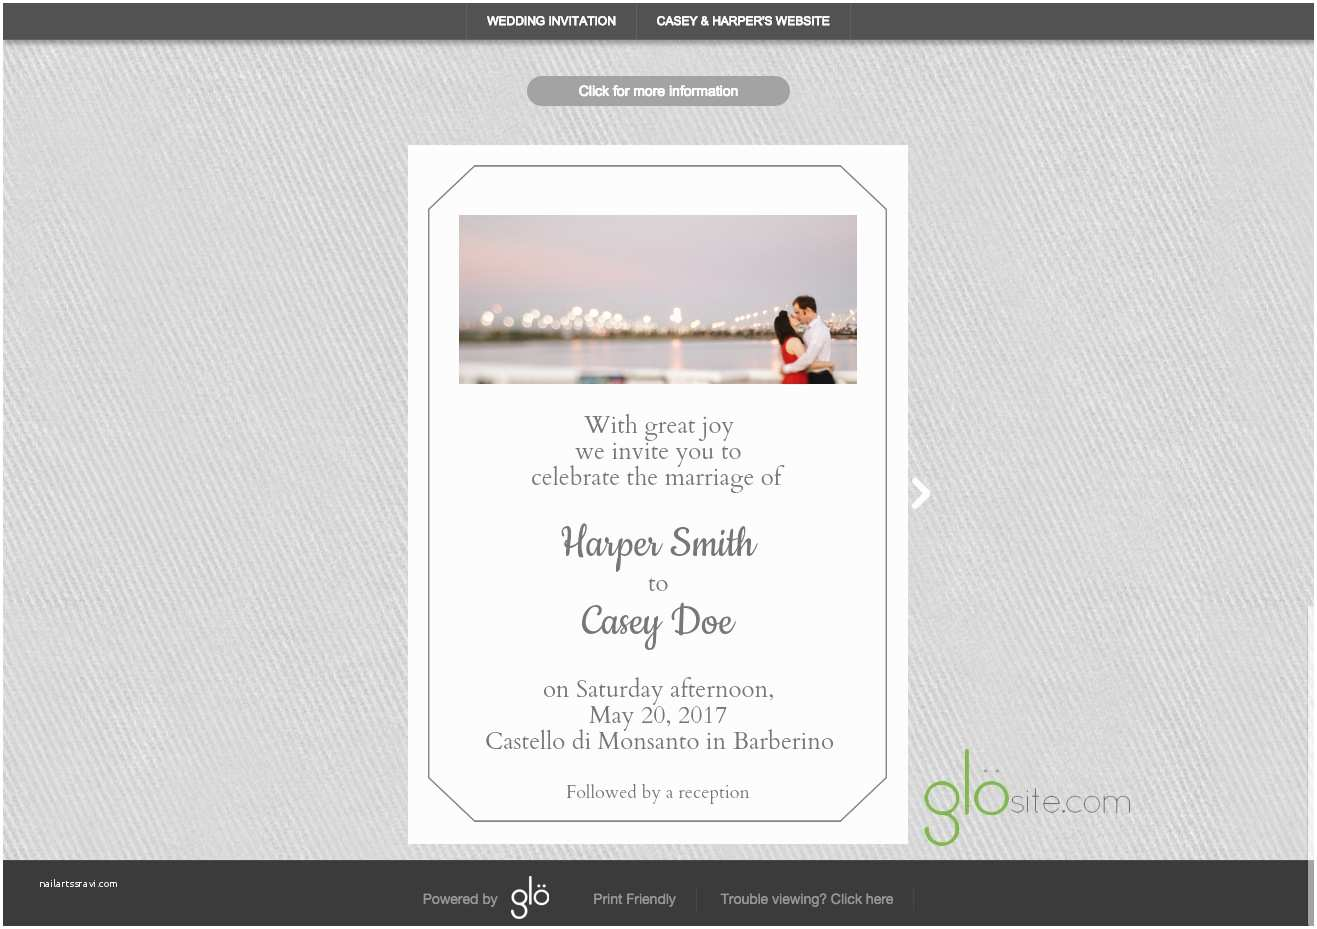 Email Wedding Shower Invitations New Email Wedding Invitations Design Template